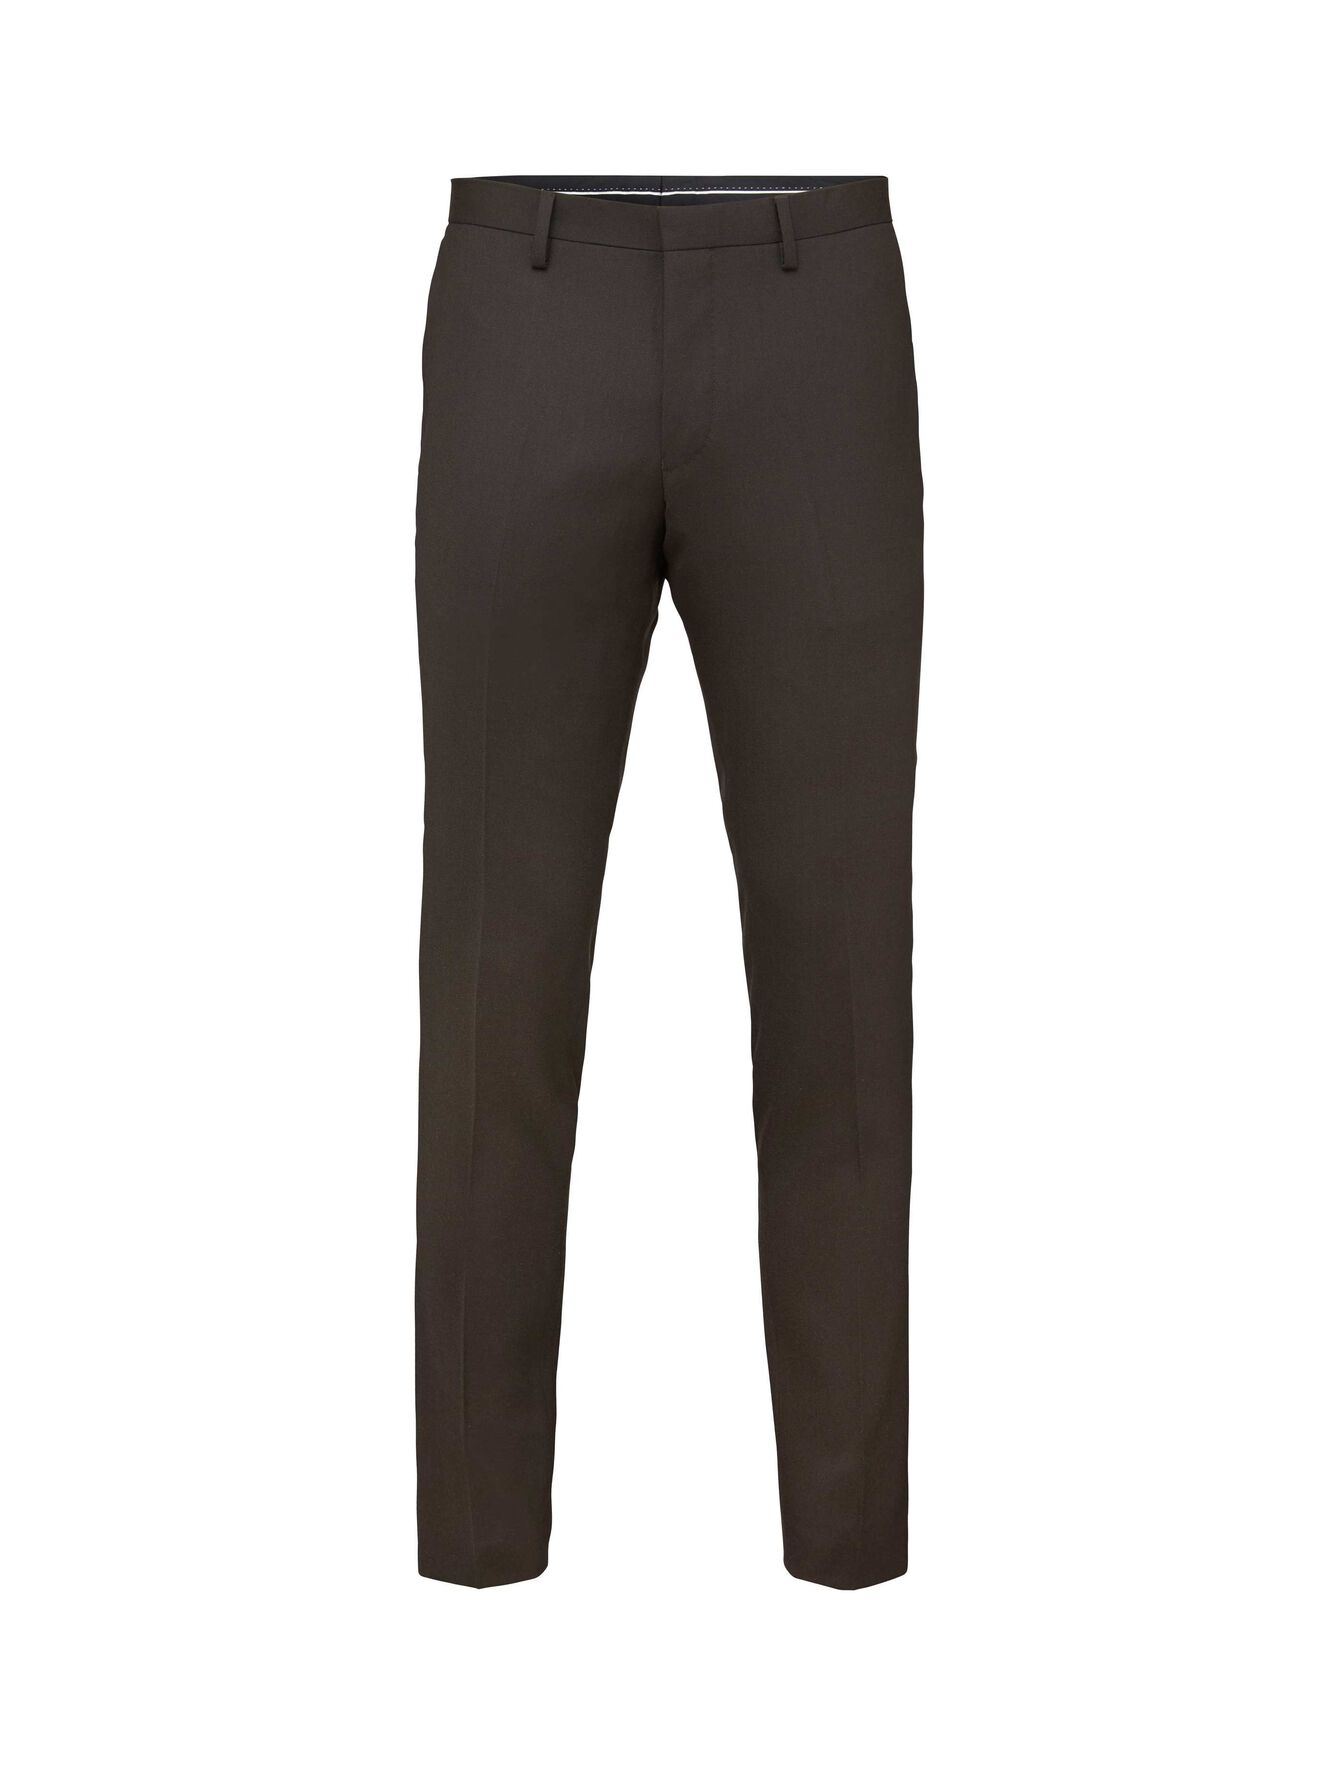 Matte trousers in Espresso from Tiger of Sweden